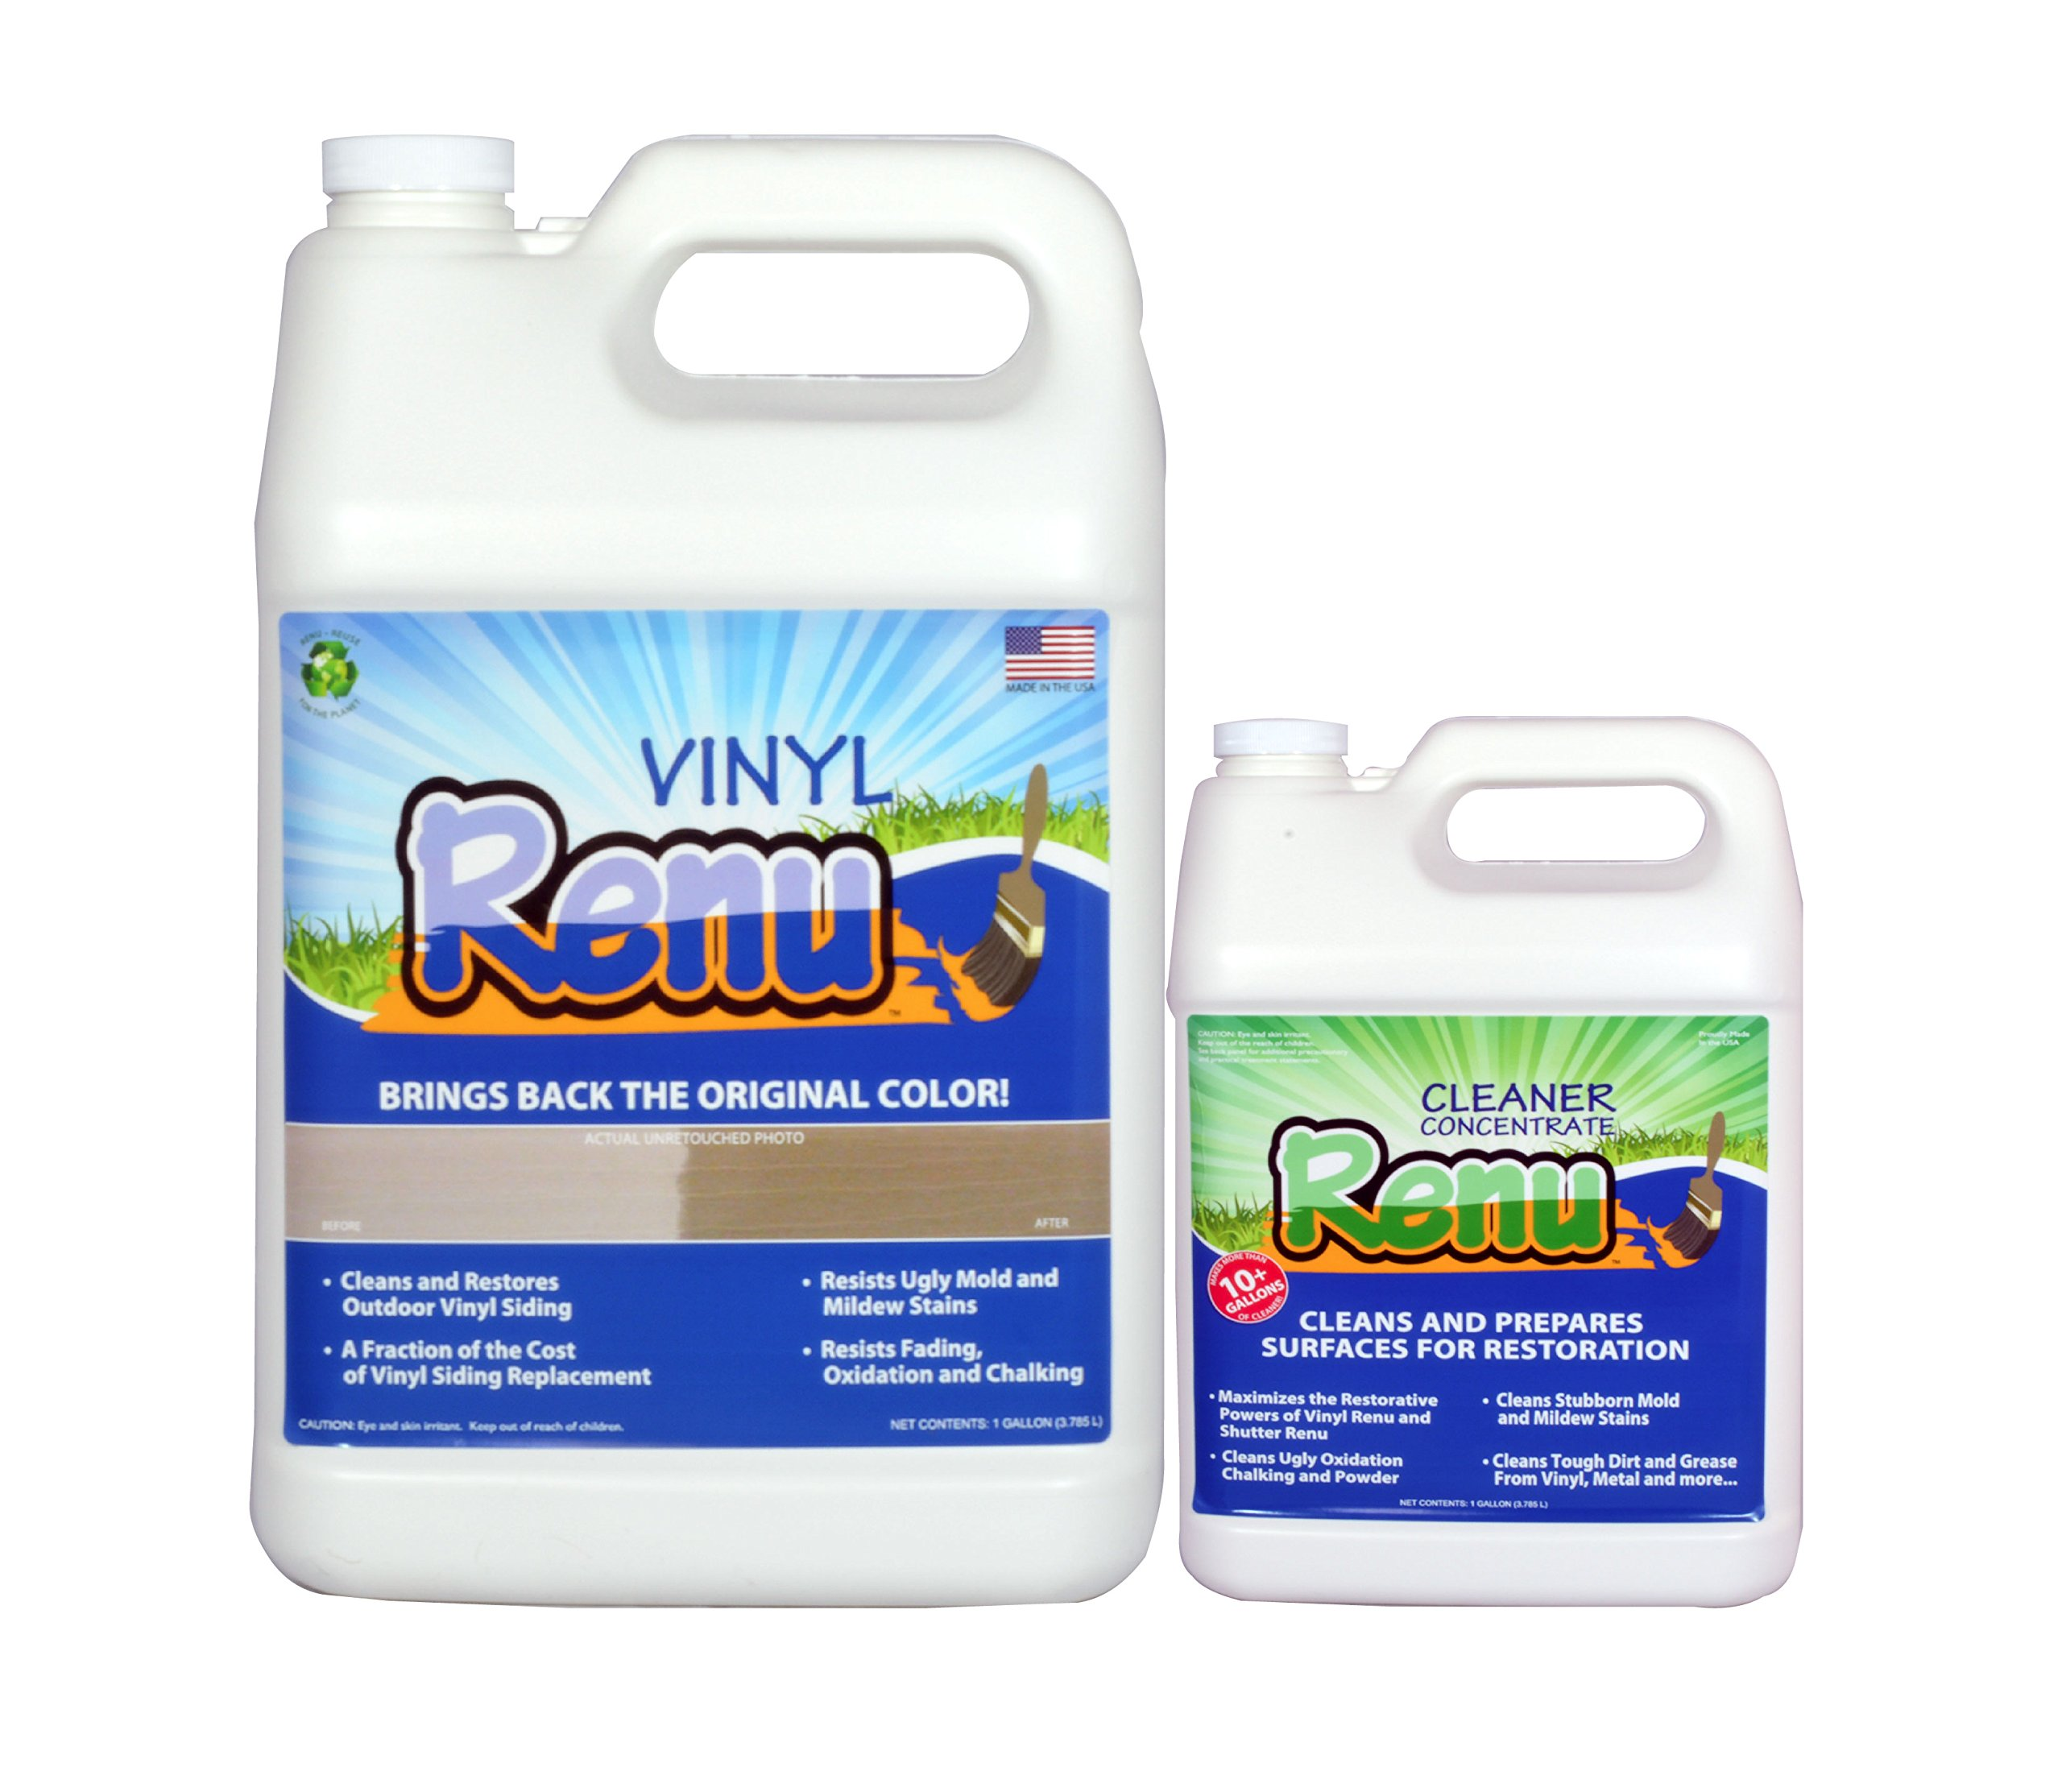 Vinyl Renu 1 Gallon Kit Will Restore Color And Shine To Faded Plastic, Metal And Painted Surfaces. It Is An Easy To Use Longer Lasting, No Mess Alternative To Paint. Apply Once Every 10 Years. by Vinyl Renu